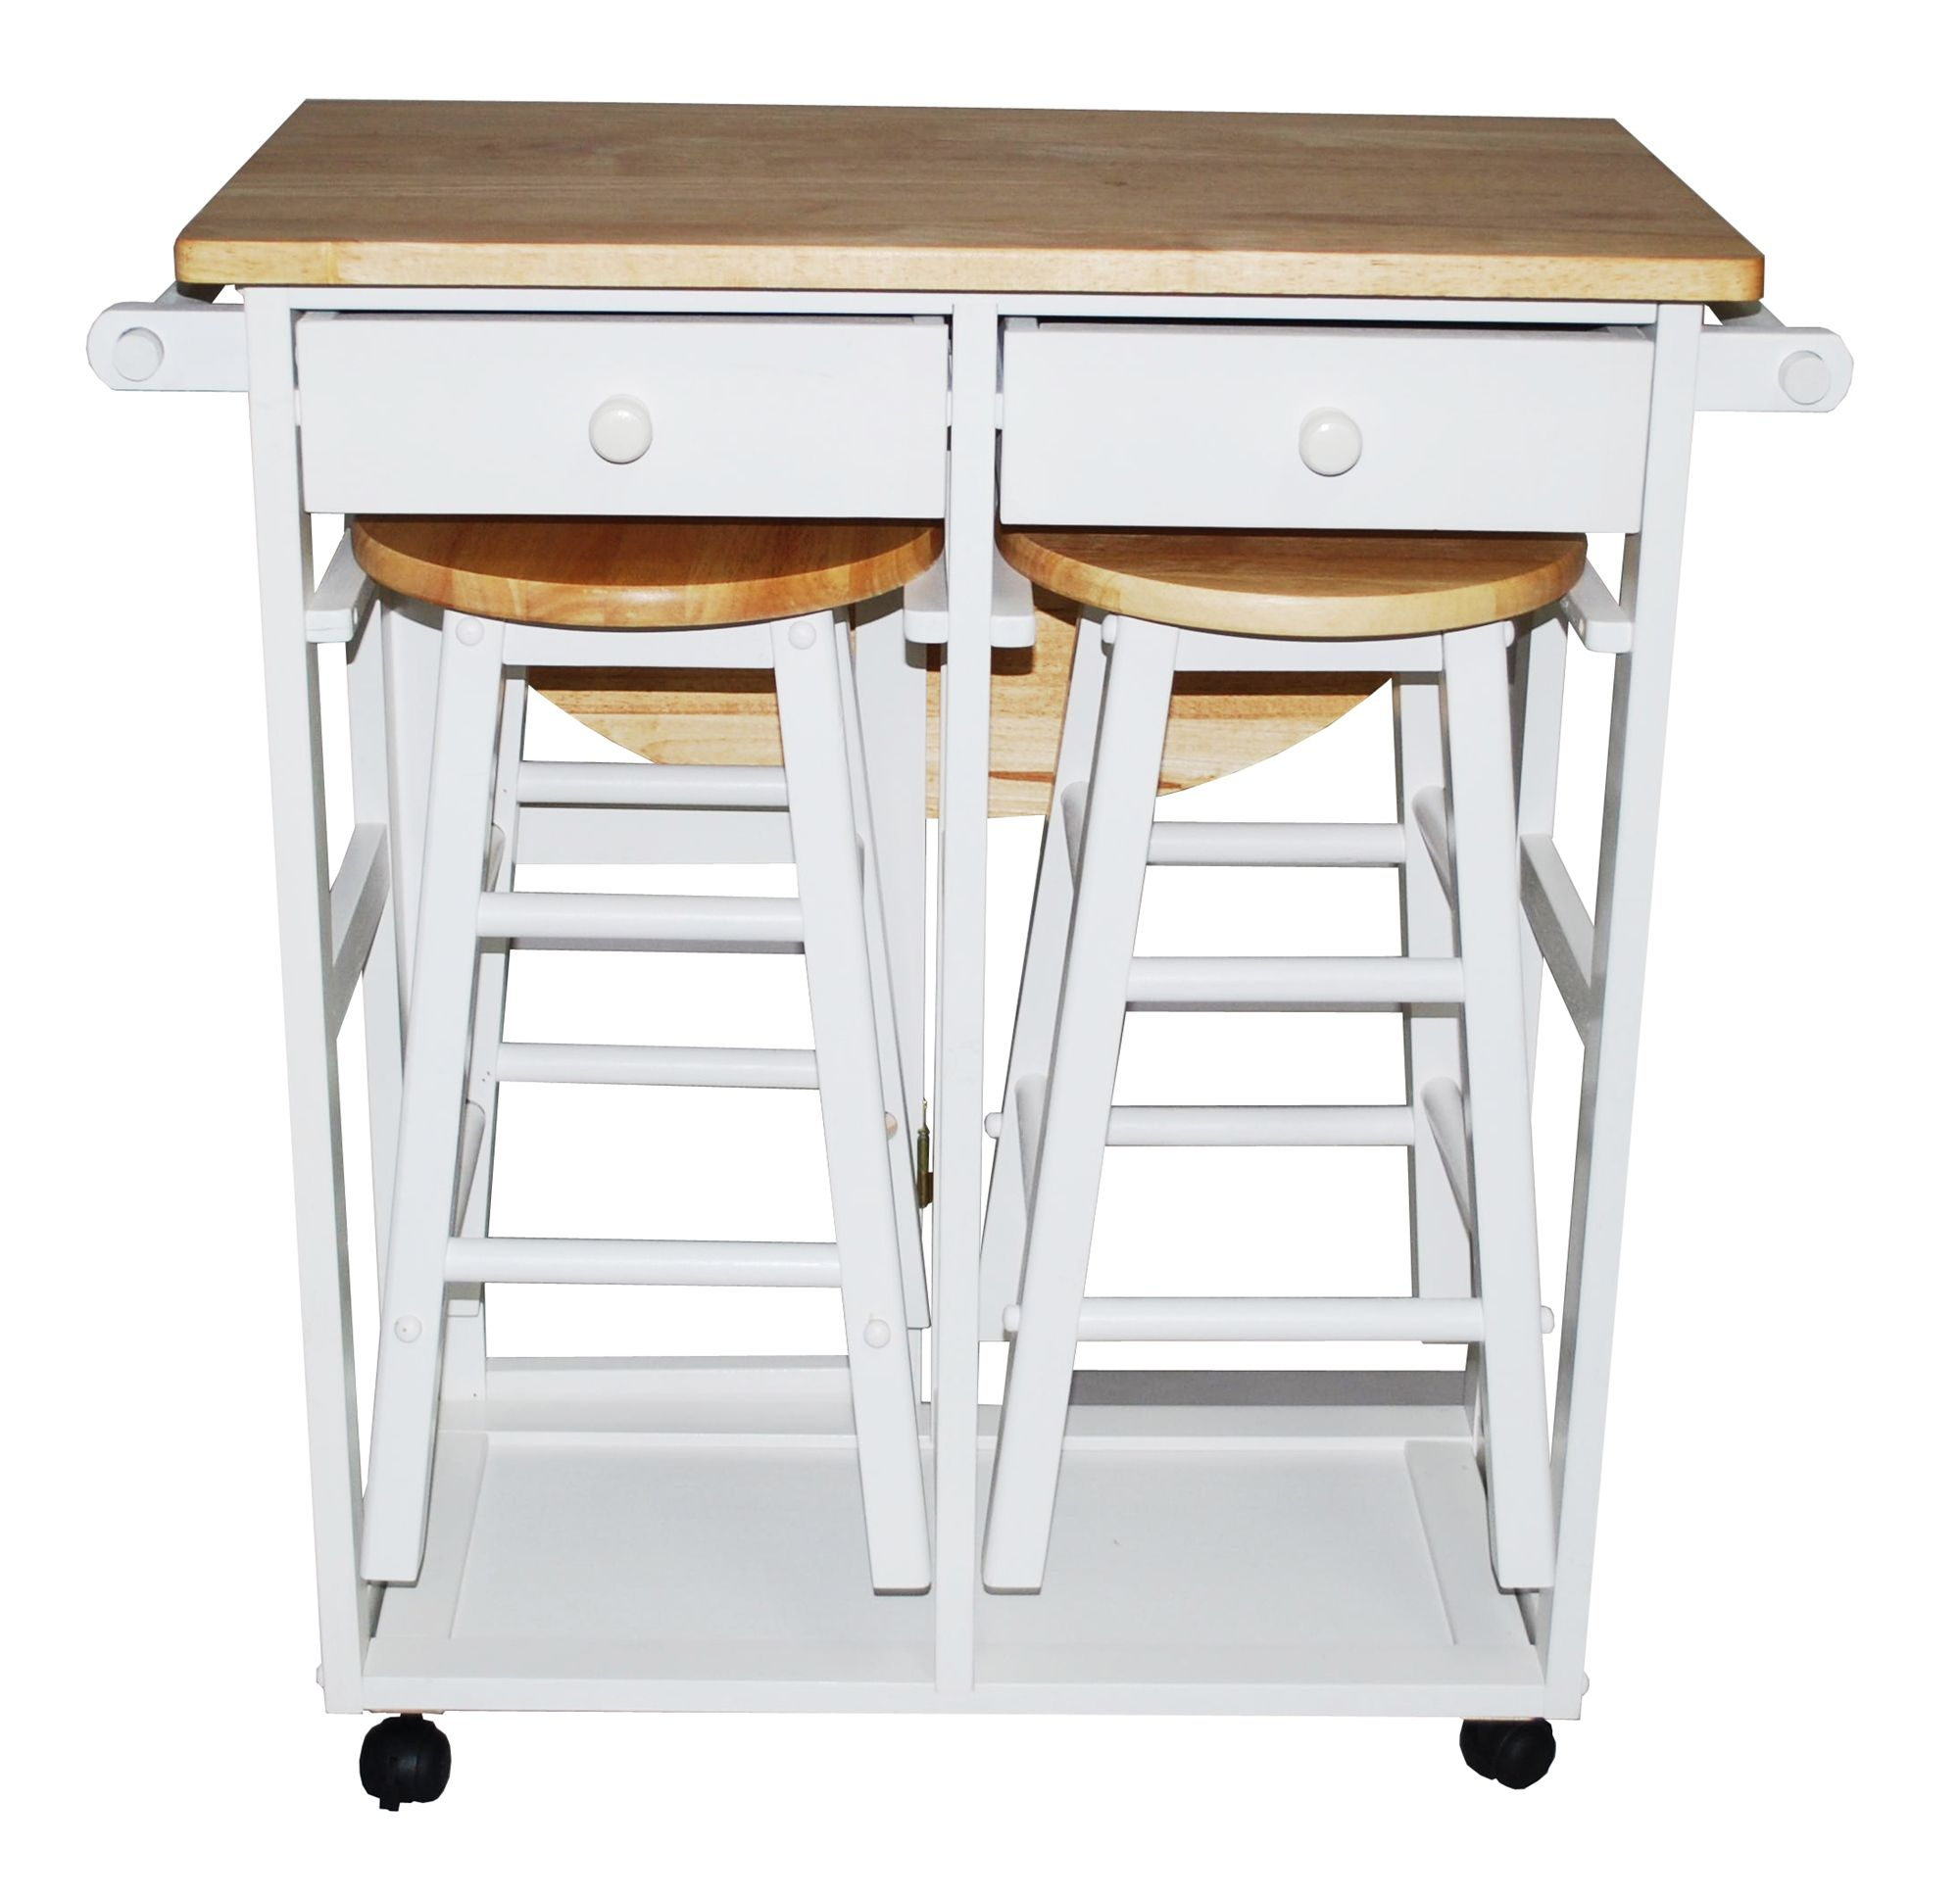 kitchen cart table hanging lights for island small target islands in 2019